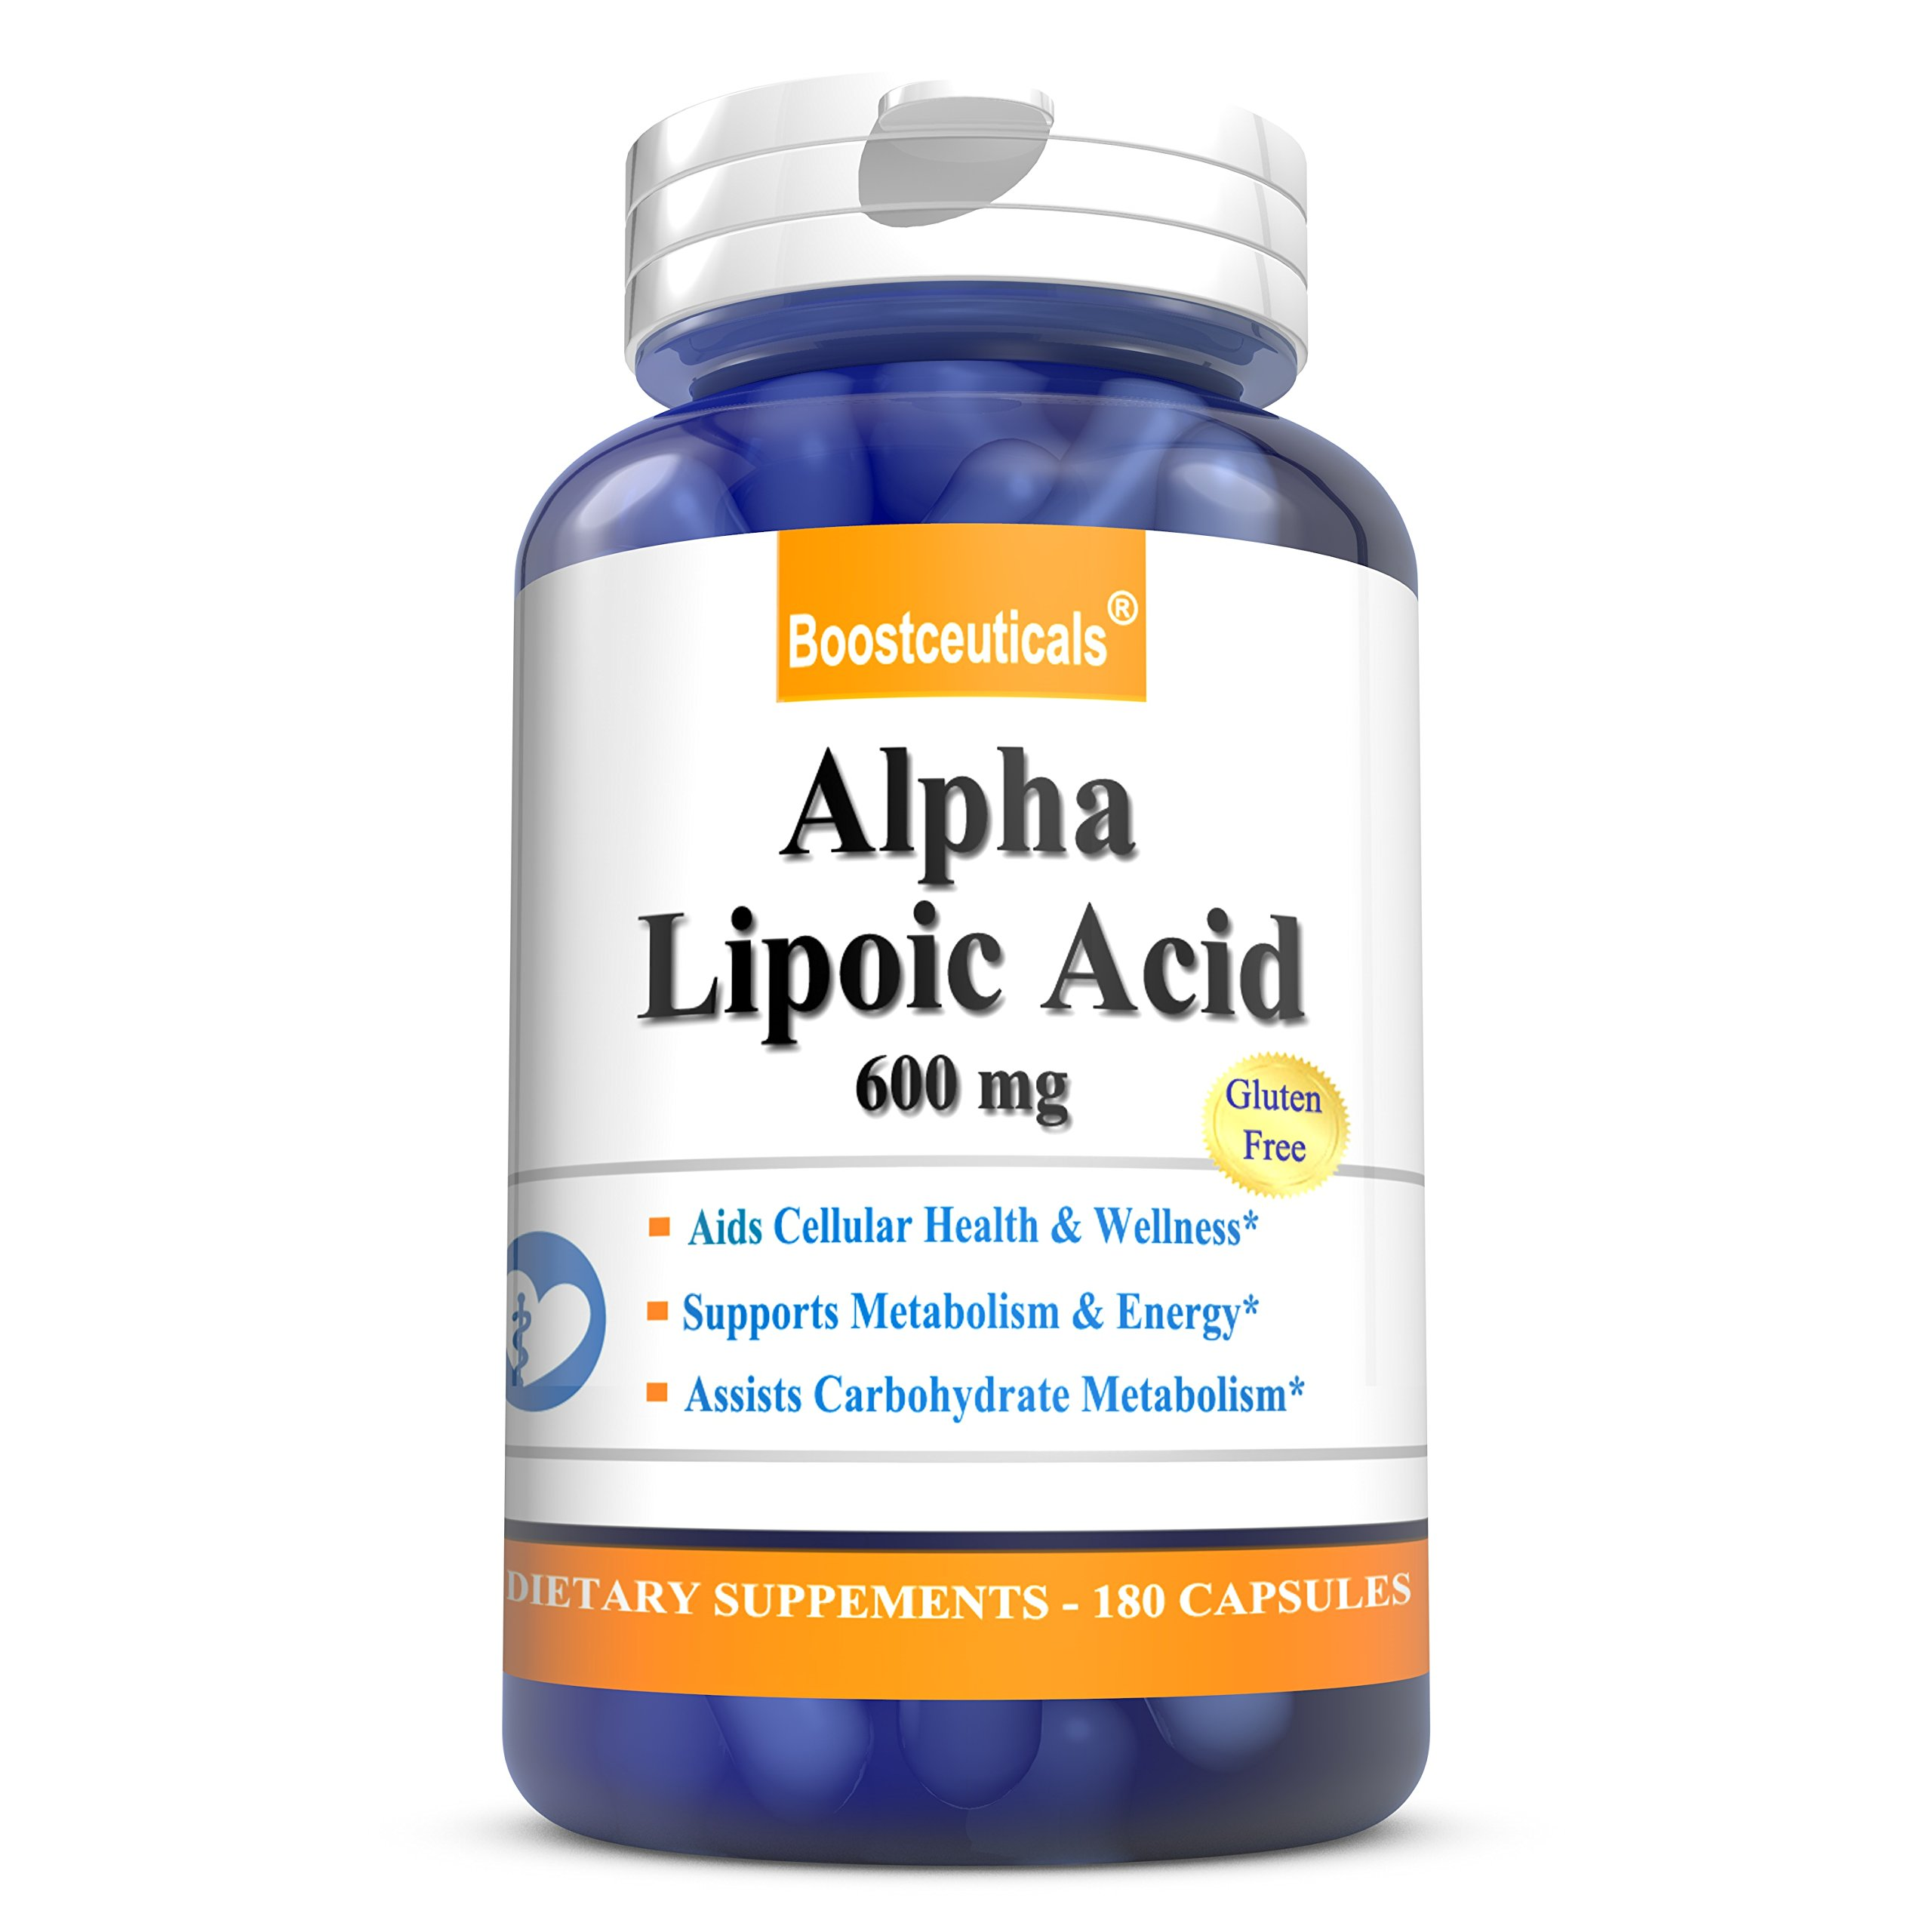 Alpha Lipoic Acid 600mg 180 Capsules - 100% Pure Lipoic Acid ALA Supplements by BoostCeuticals